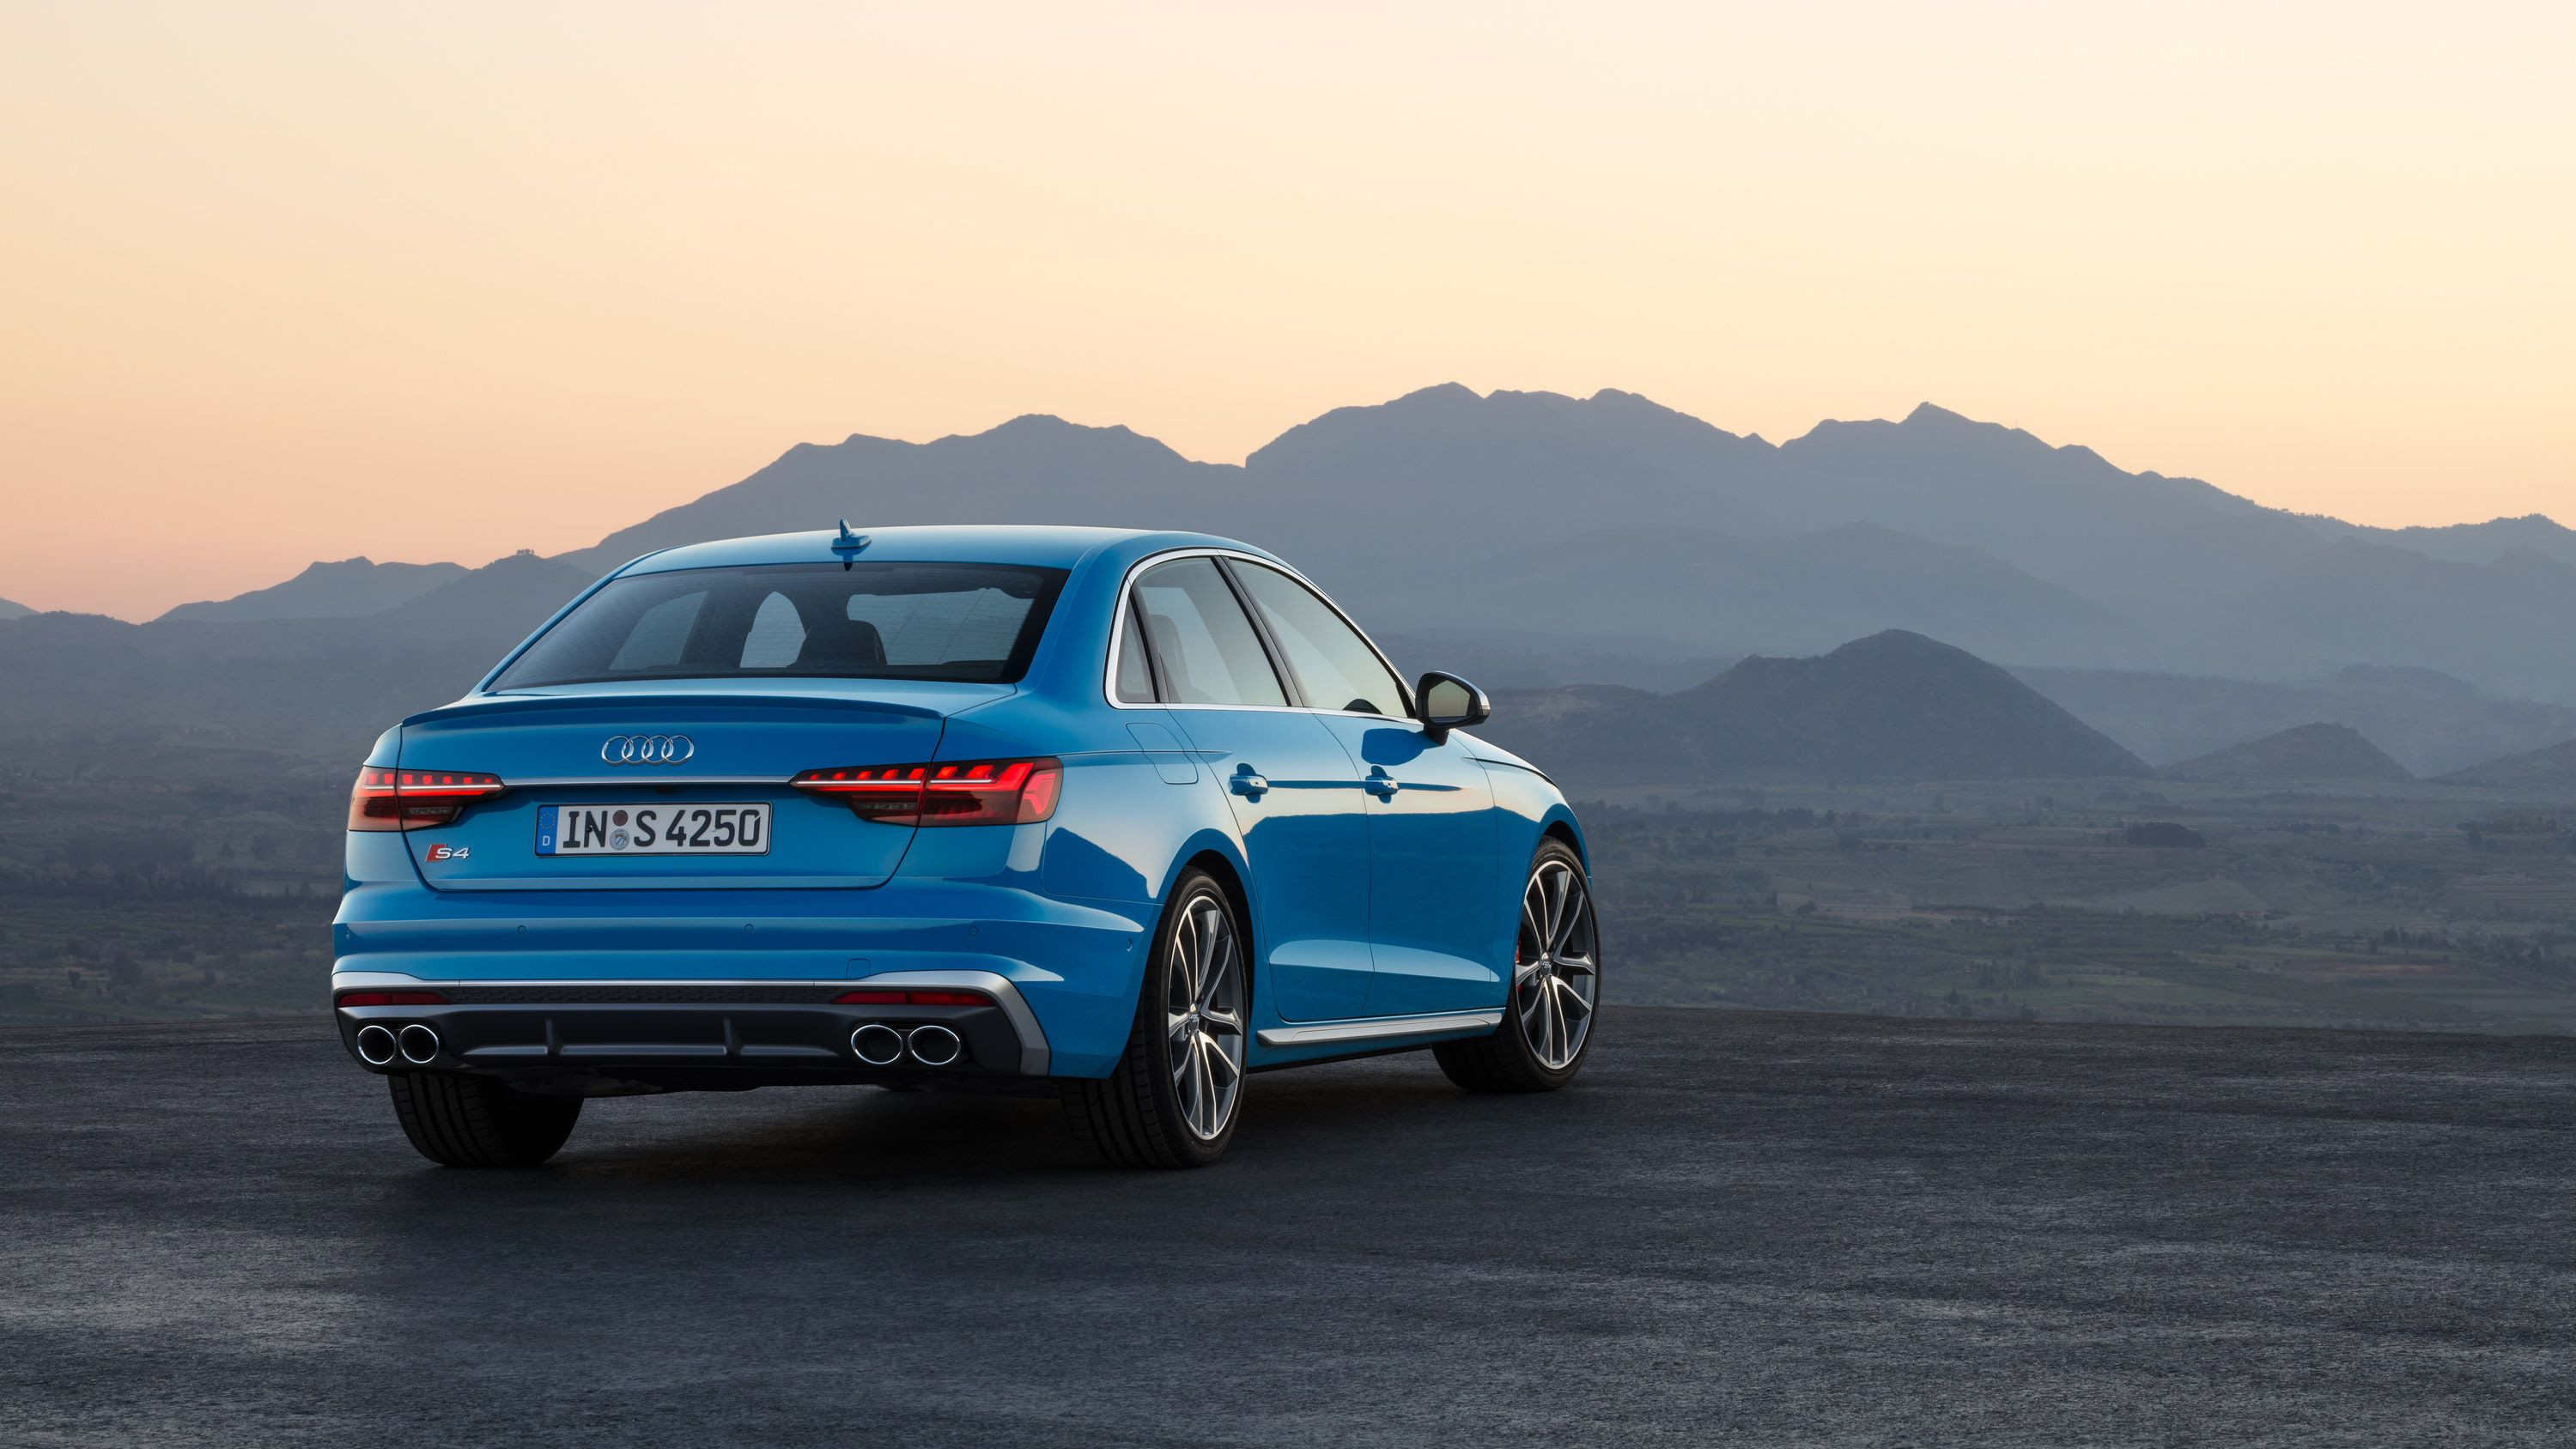 rear view of a blue Audi S4